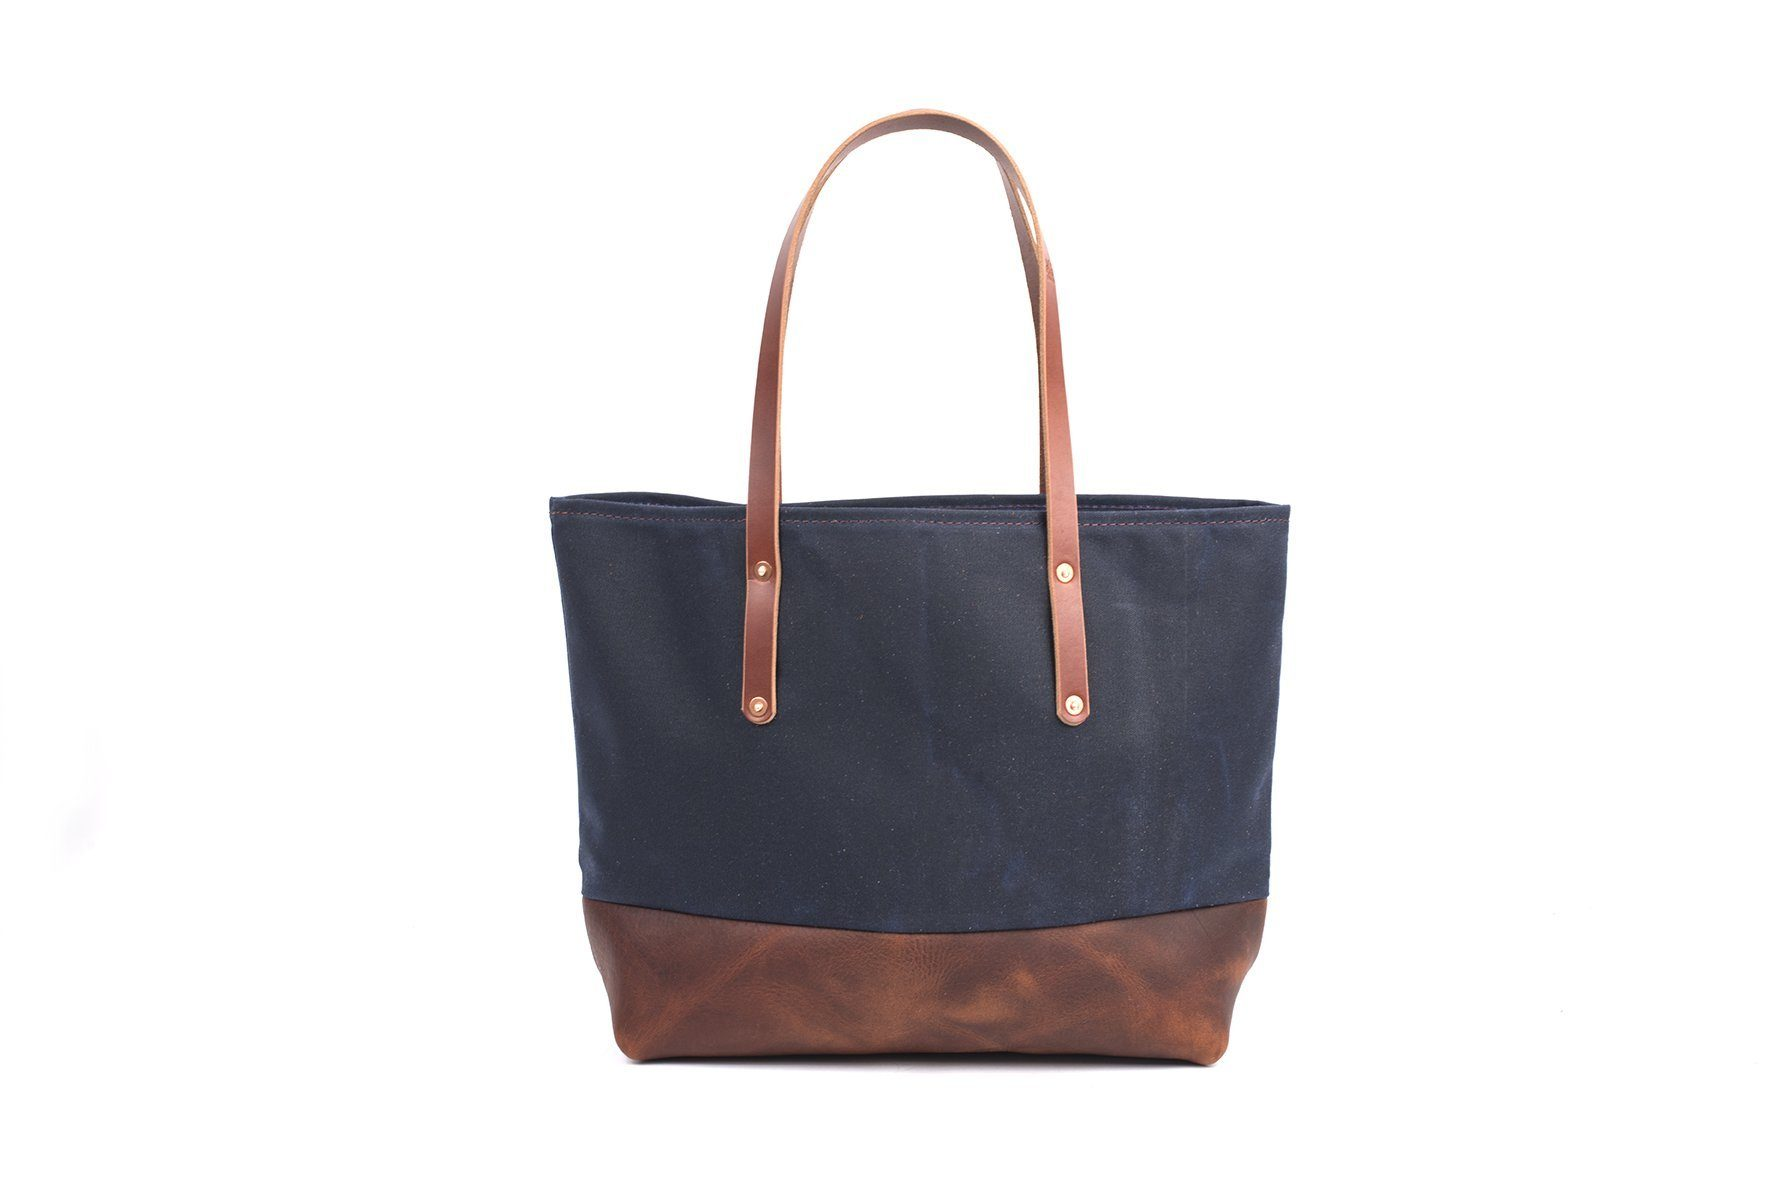 c397b8b865a AVERY WAXED CANVAS TOTE BAG - LARGE